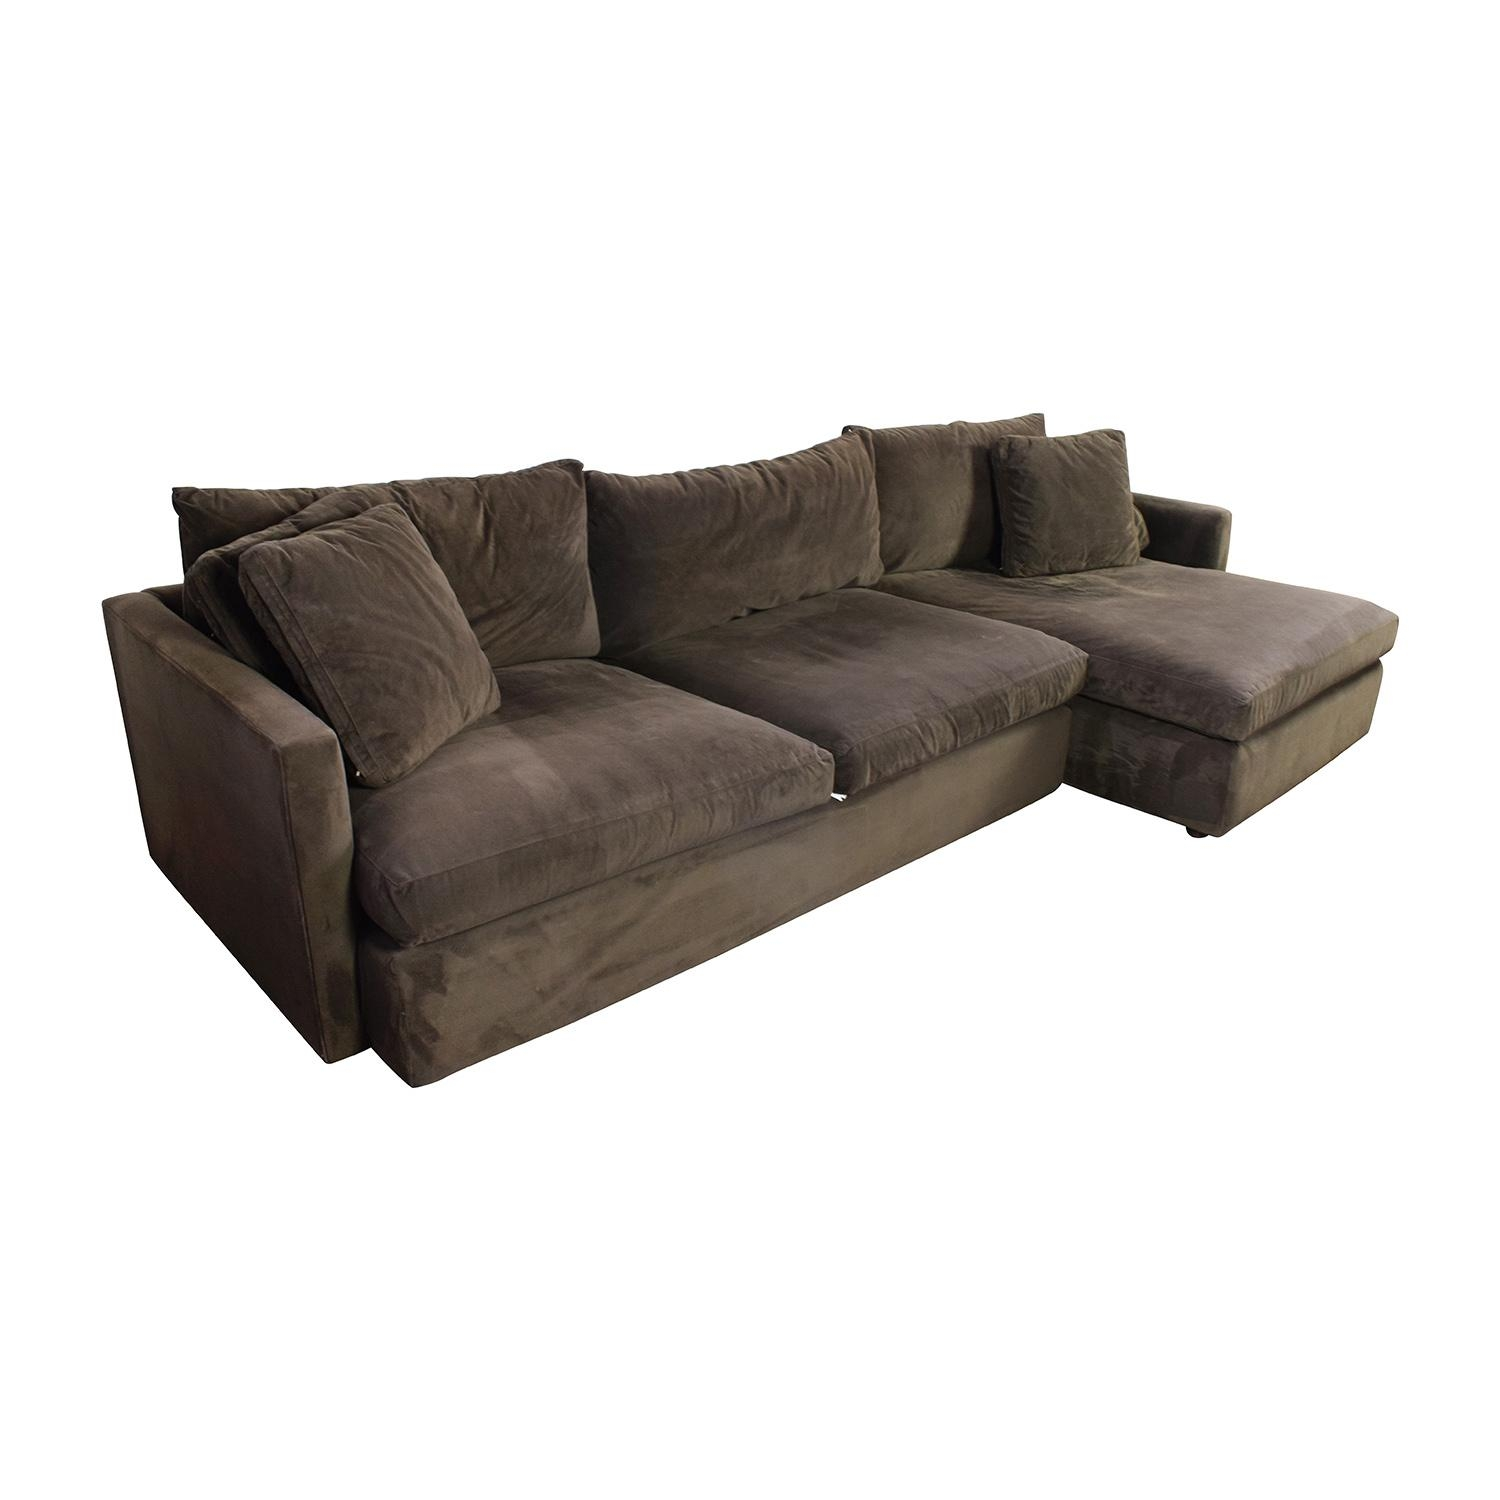 89% Off – Crate And Barrel Crate & Barrel Brown Left Arm Sectional Throughout Sectional Crate And Barrel (Image 8 of 20)